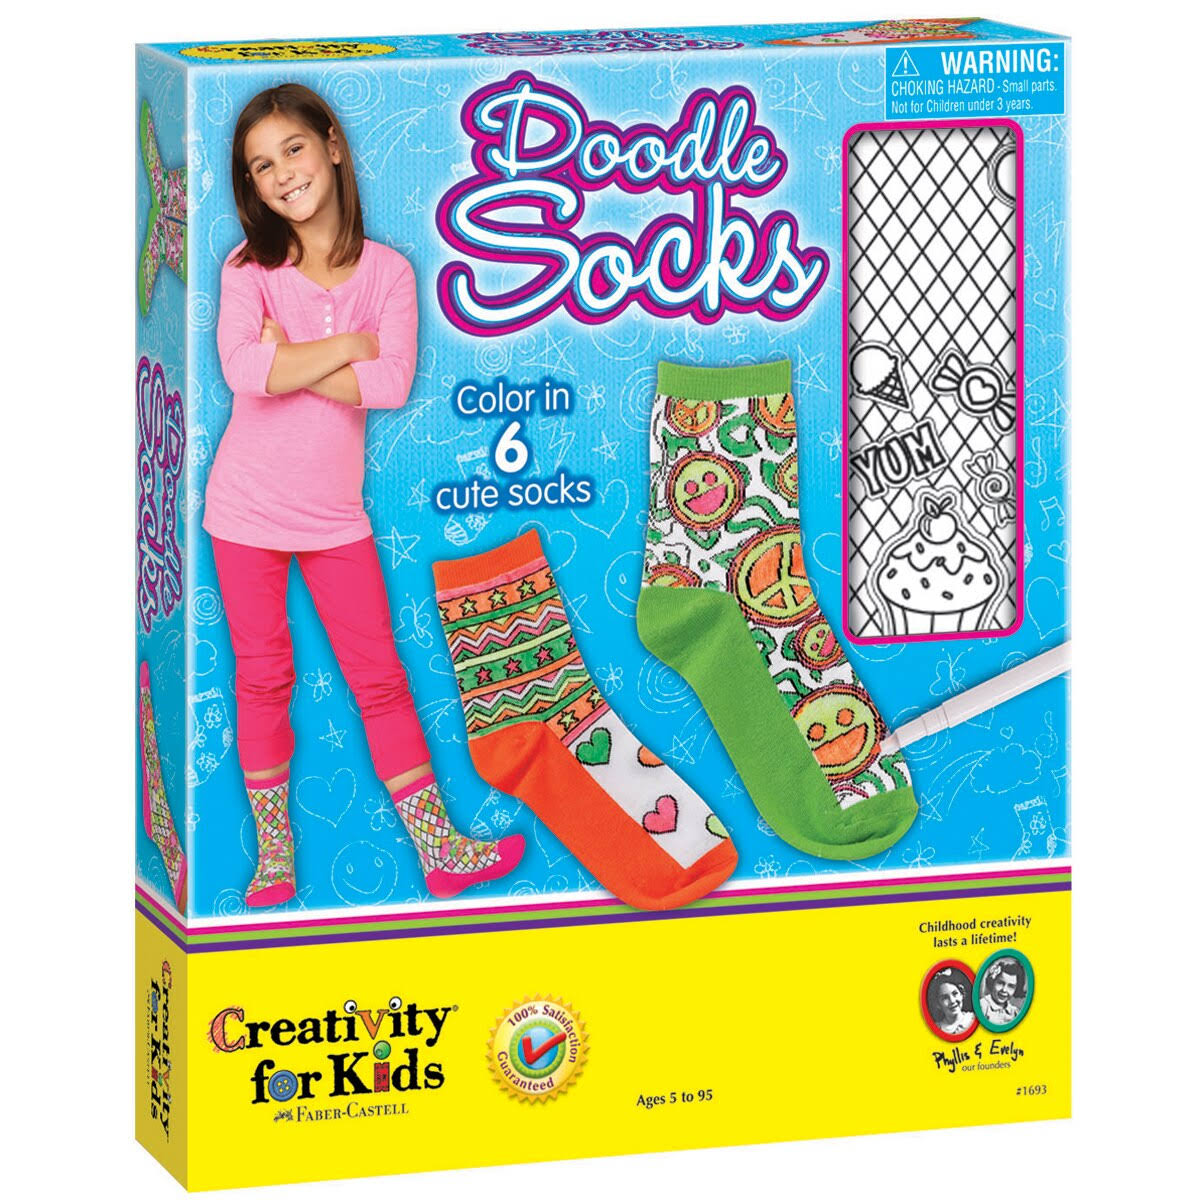 Faber-Castell Creativity for Kids Doodle Socks